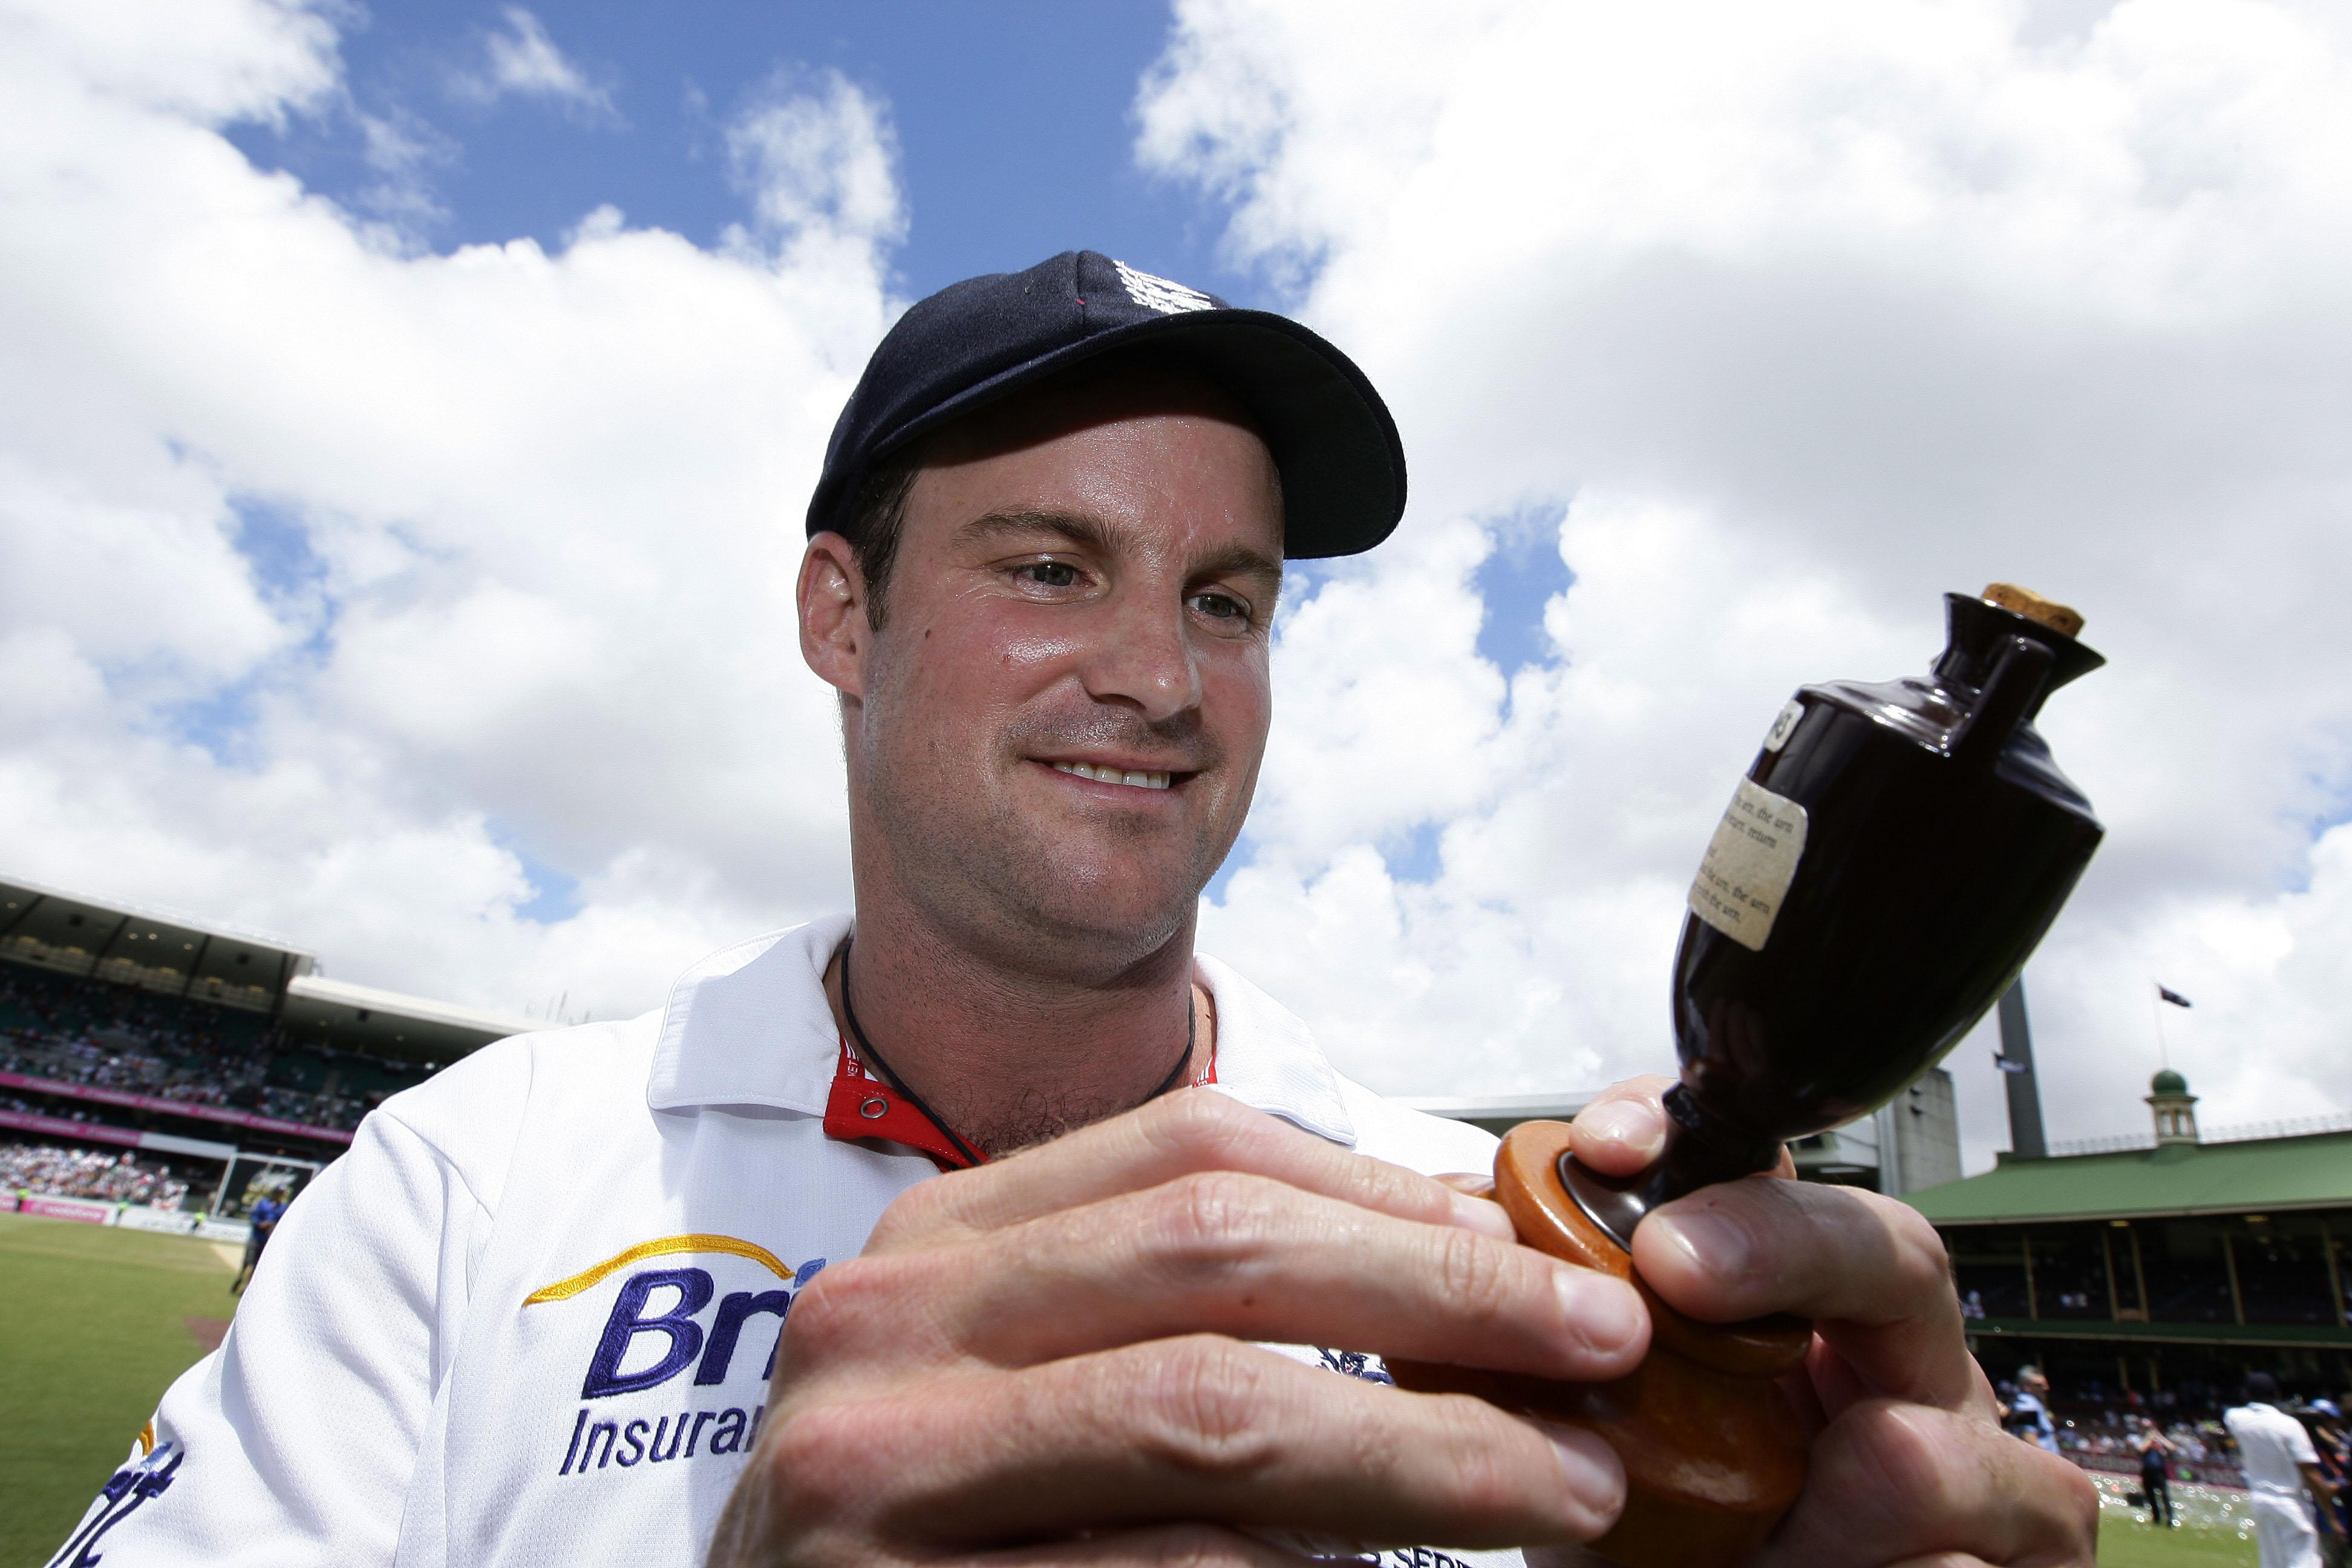 Andrew Strauss was an Ashes-winning captain as a player